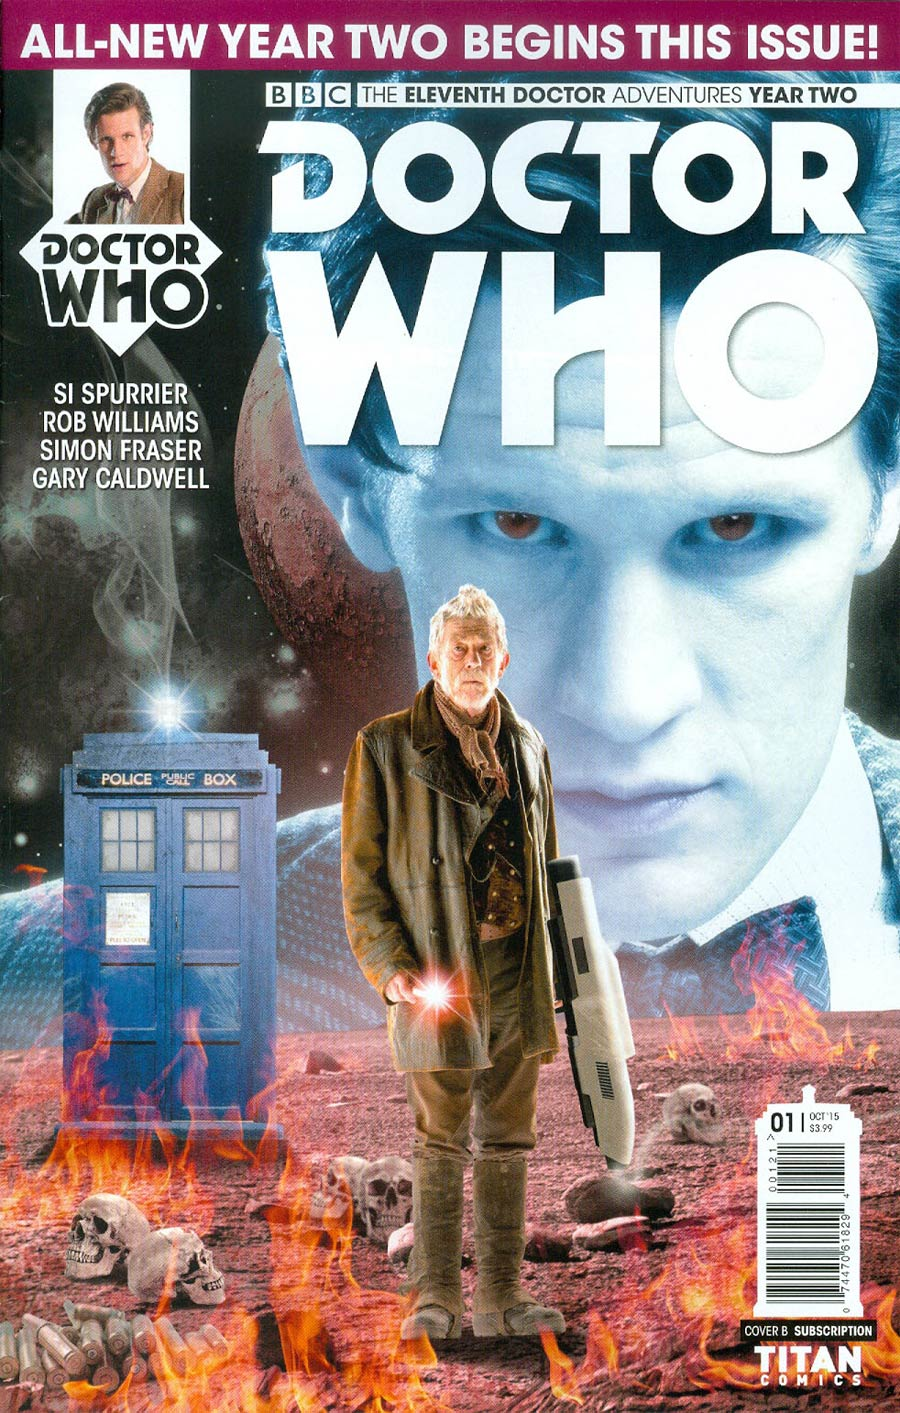 Doctor Who 11th Doctor Year Two #1 Cover B Variant Photo Subscription Cover